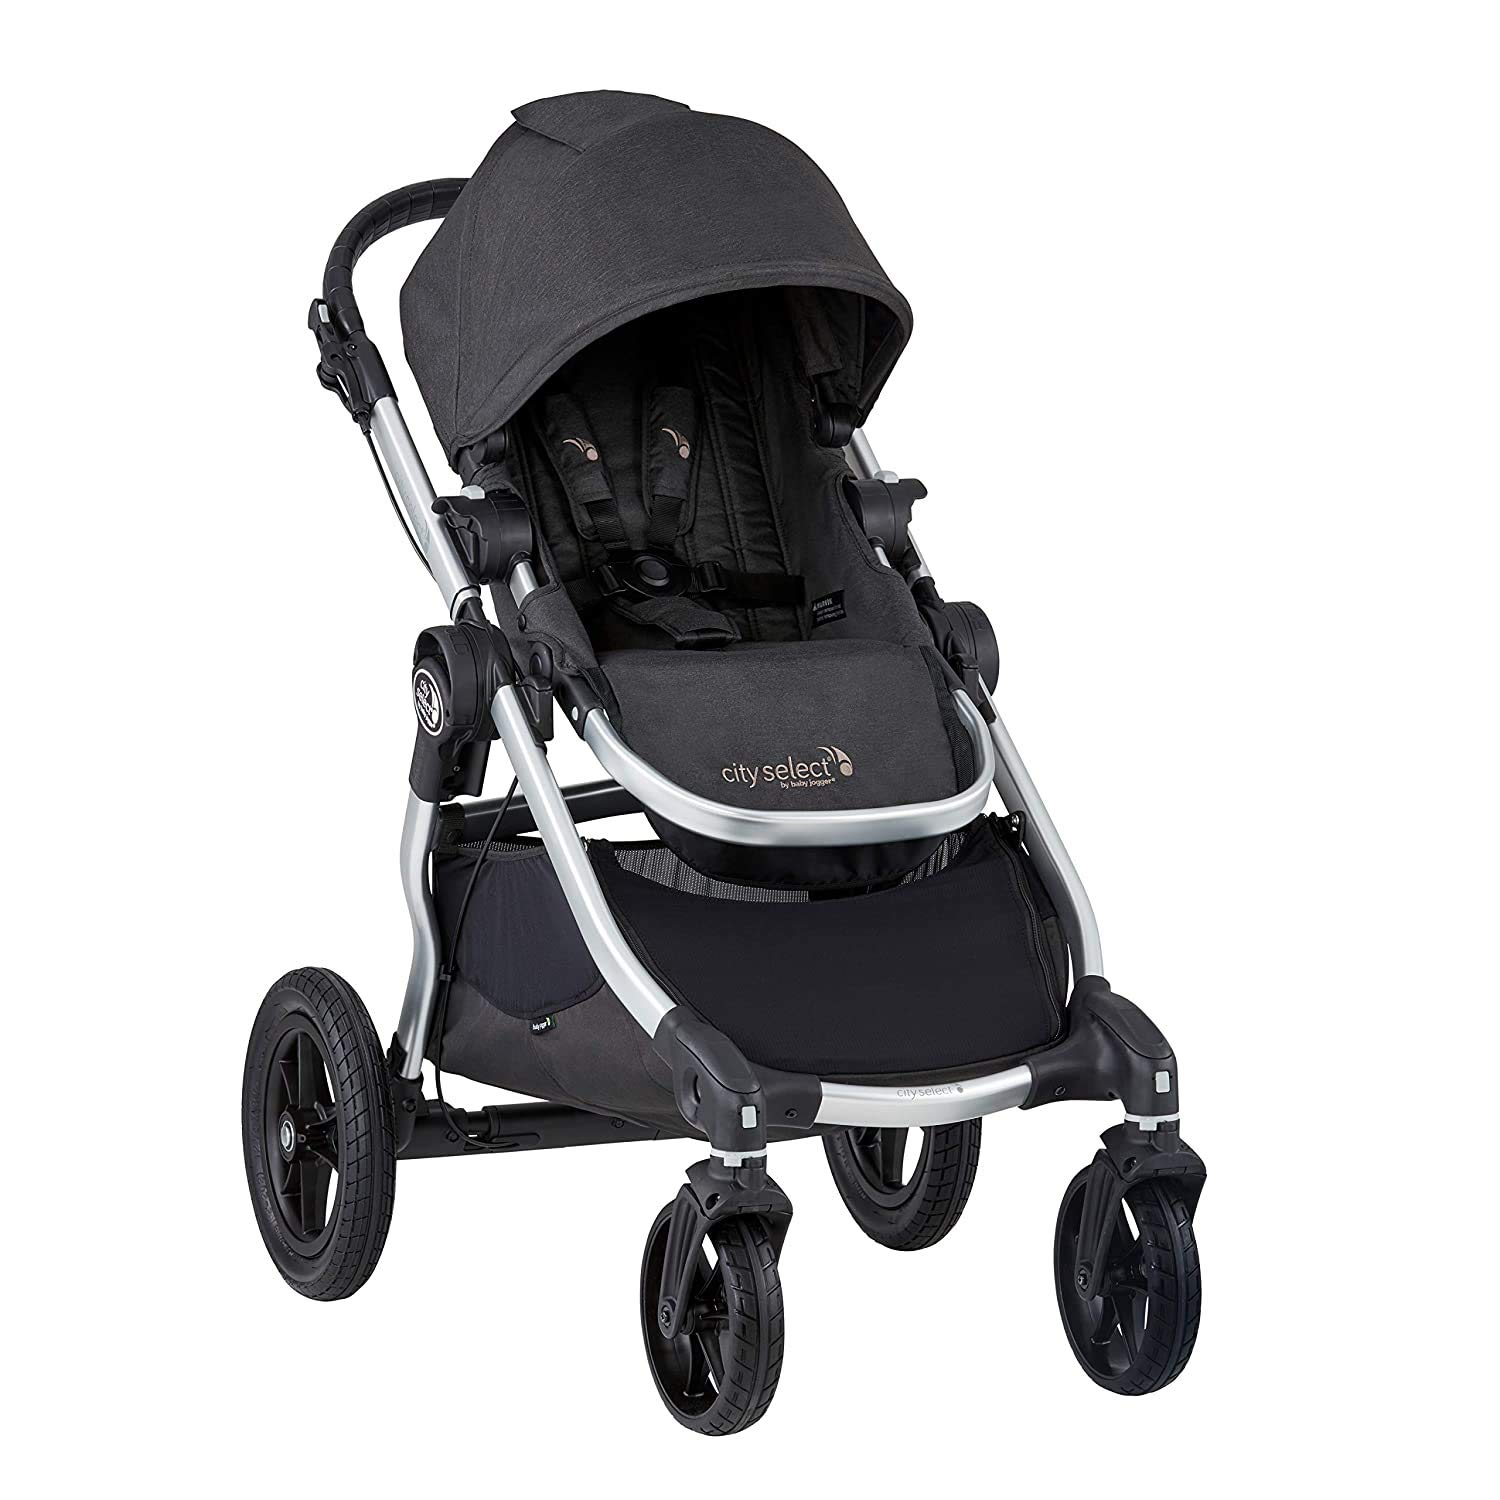 New Baby Jogger City Select pushchair second seat adaptors Black